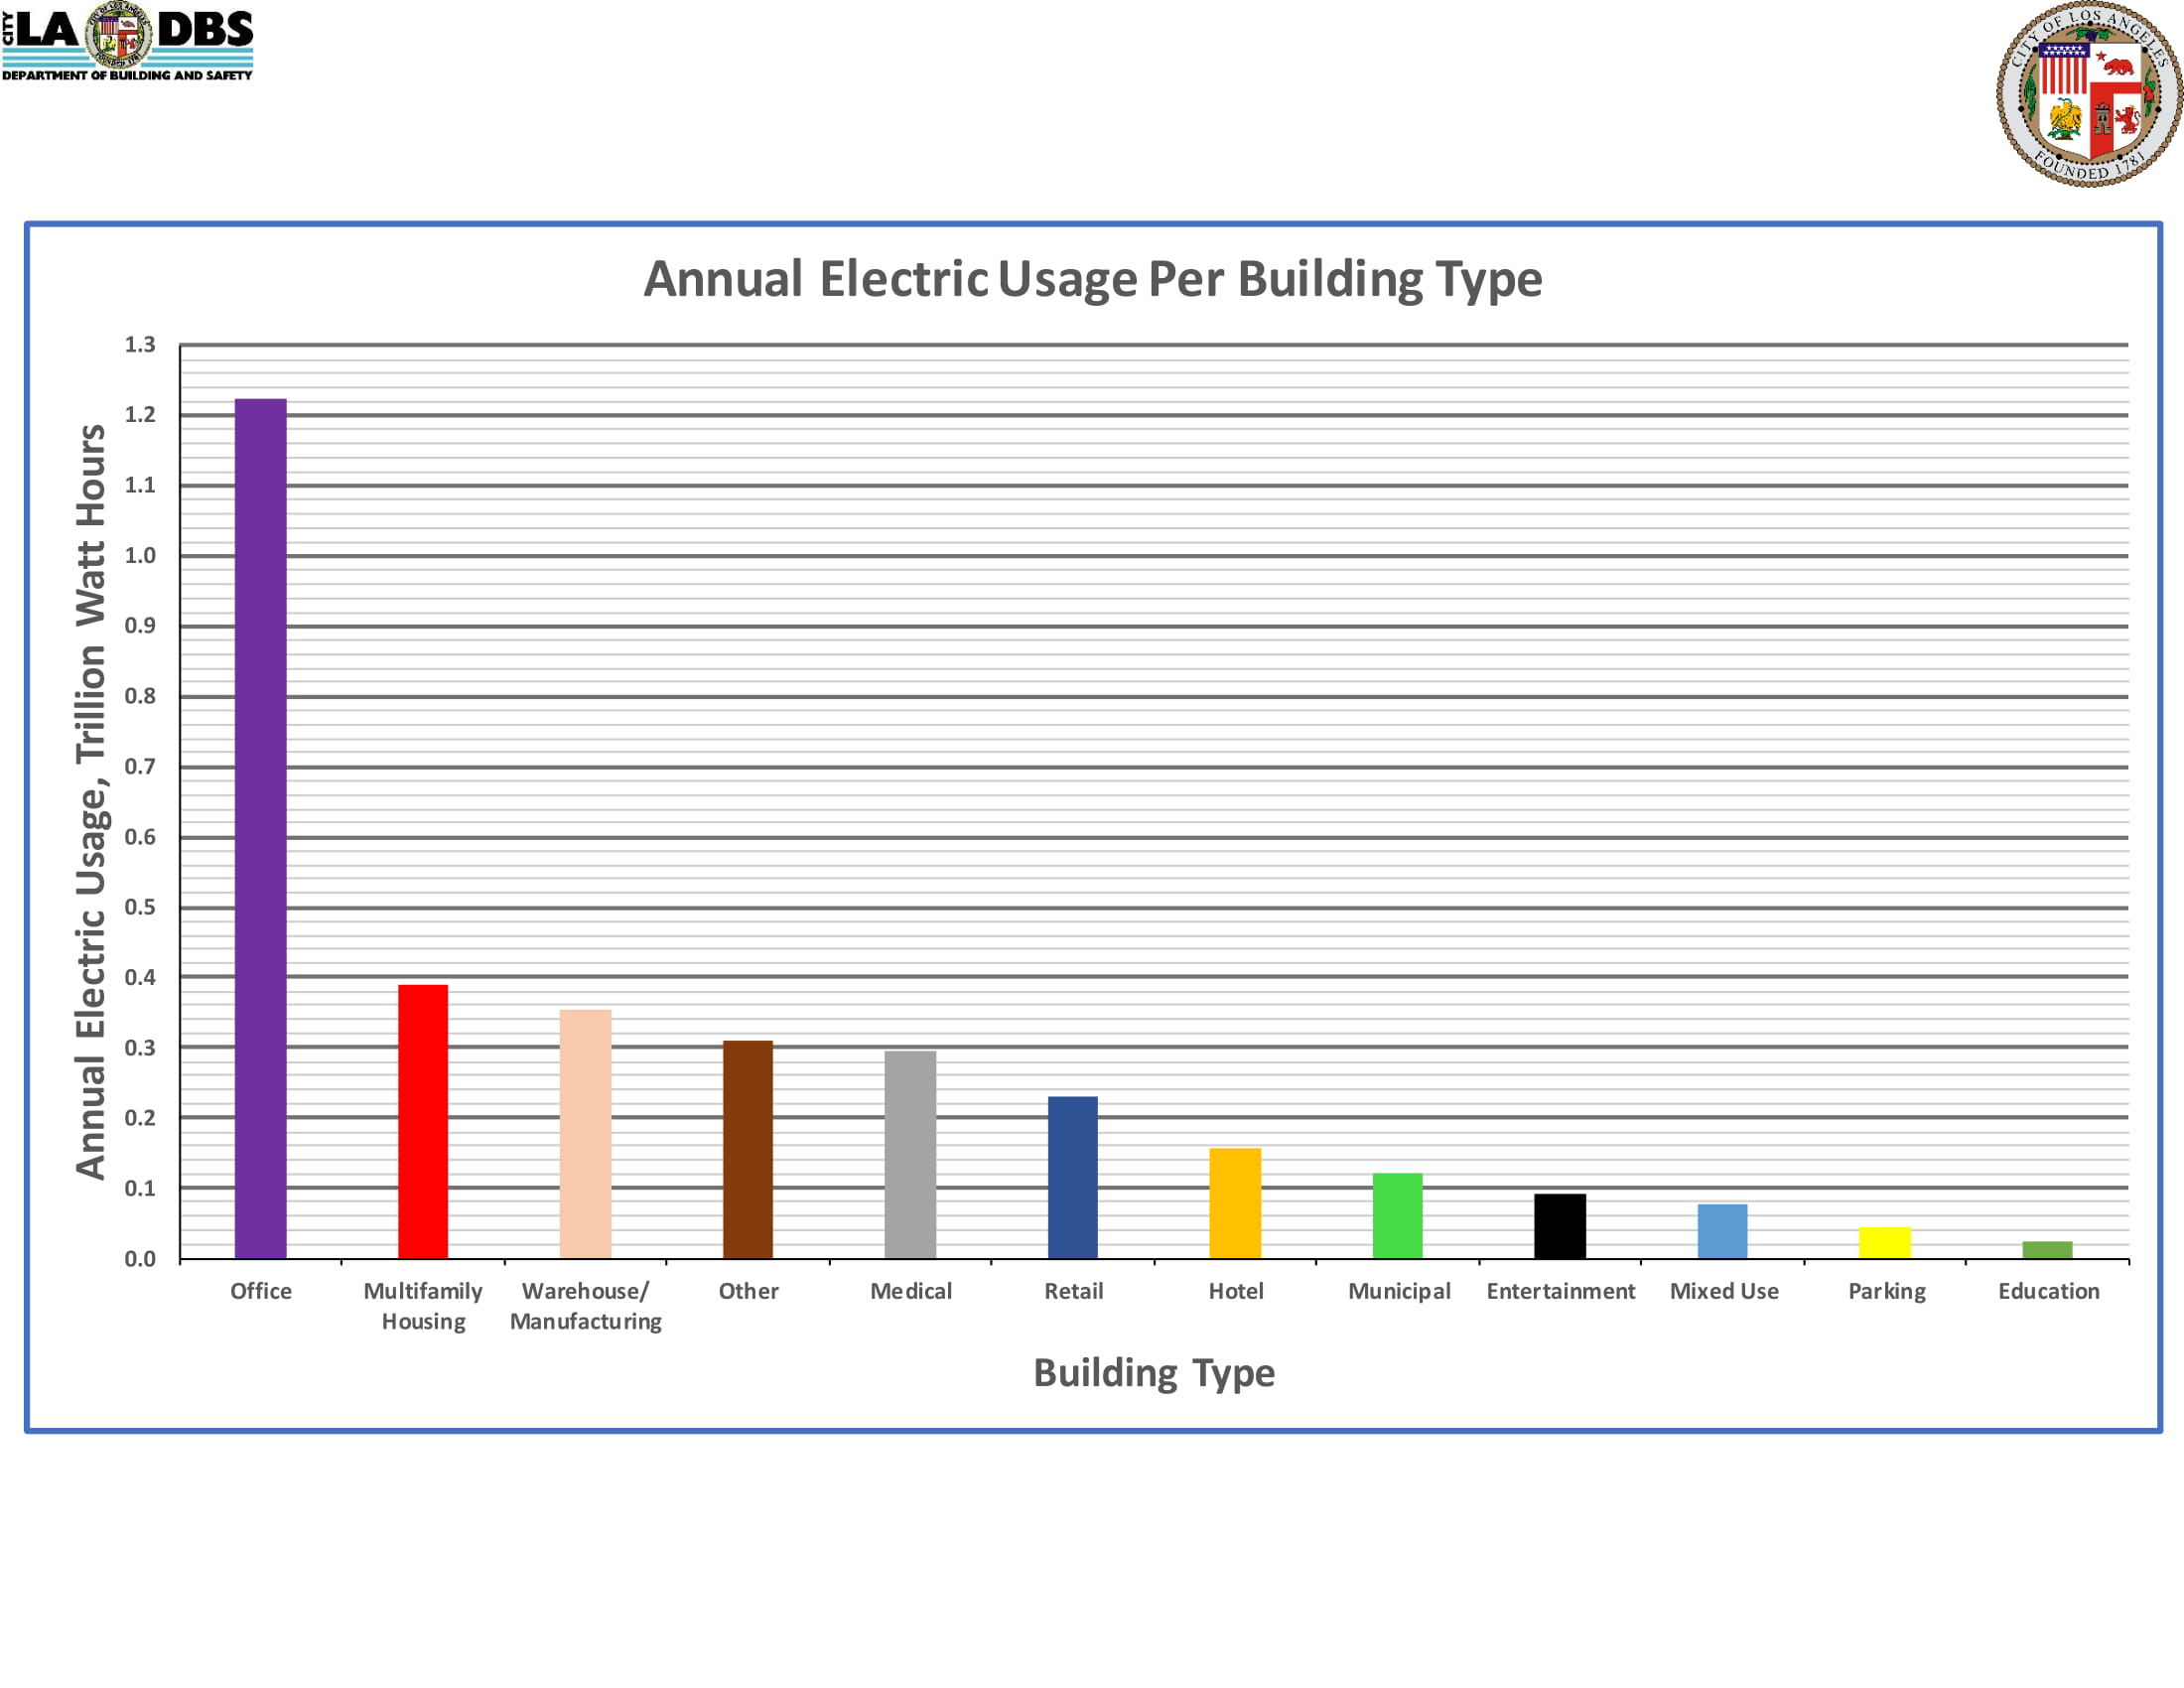 Annual Electric Usage Per Building Type